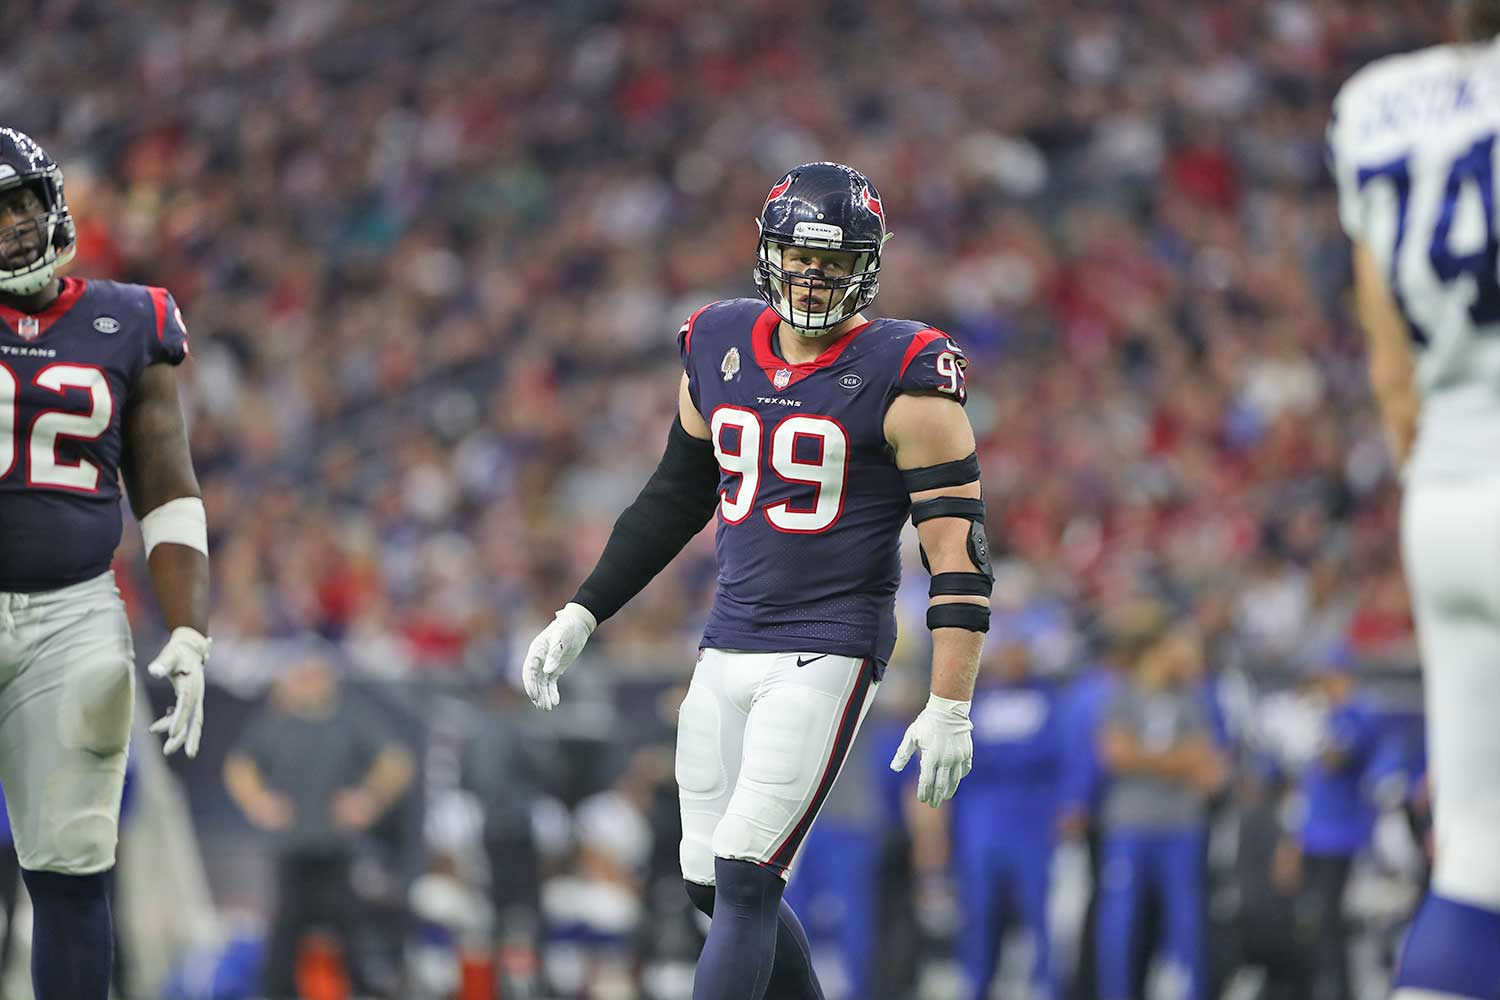 J.J. Watt playing for Houston Texans